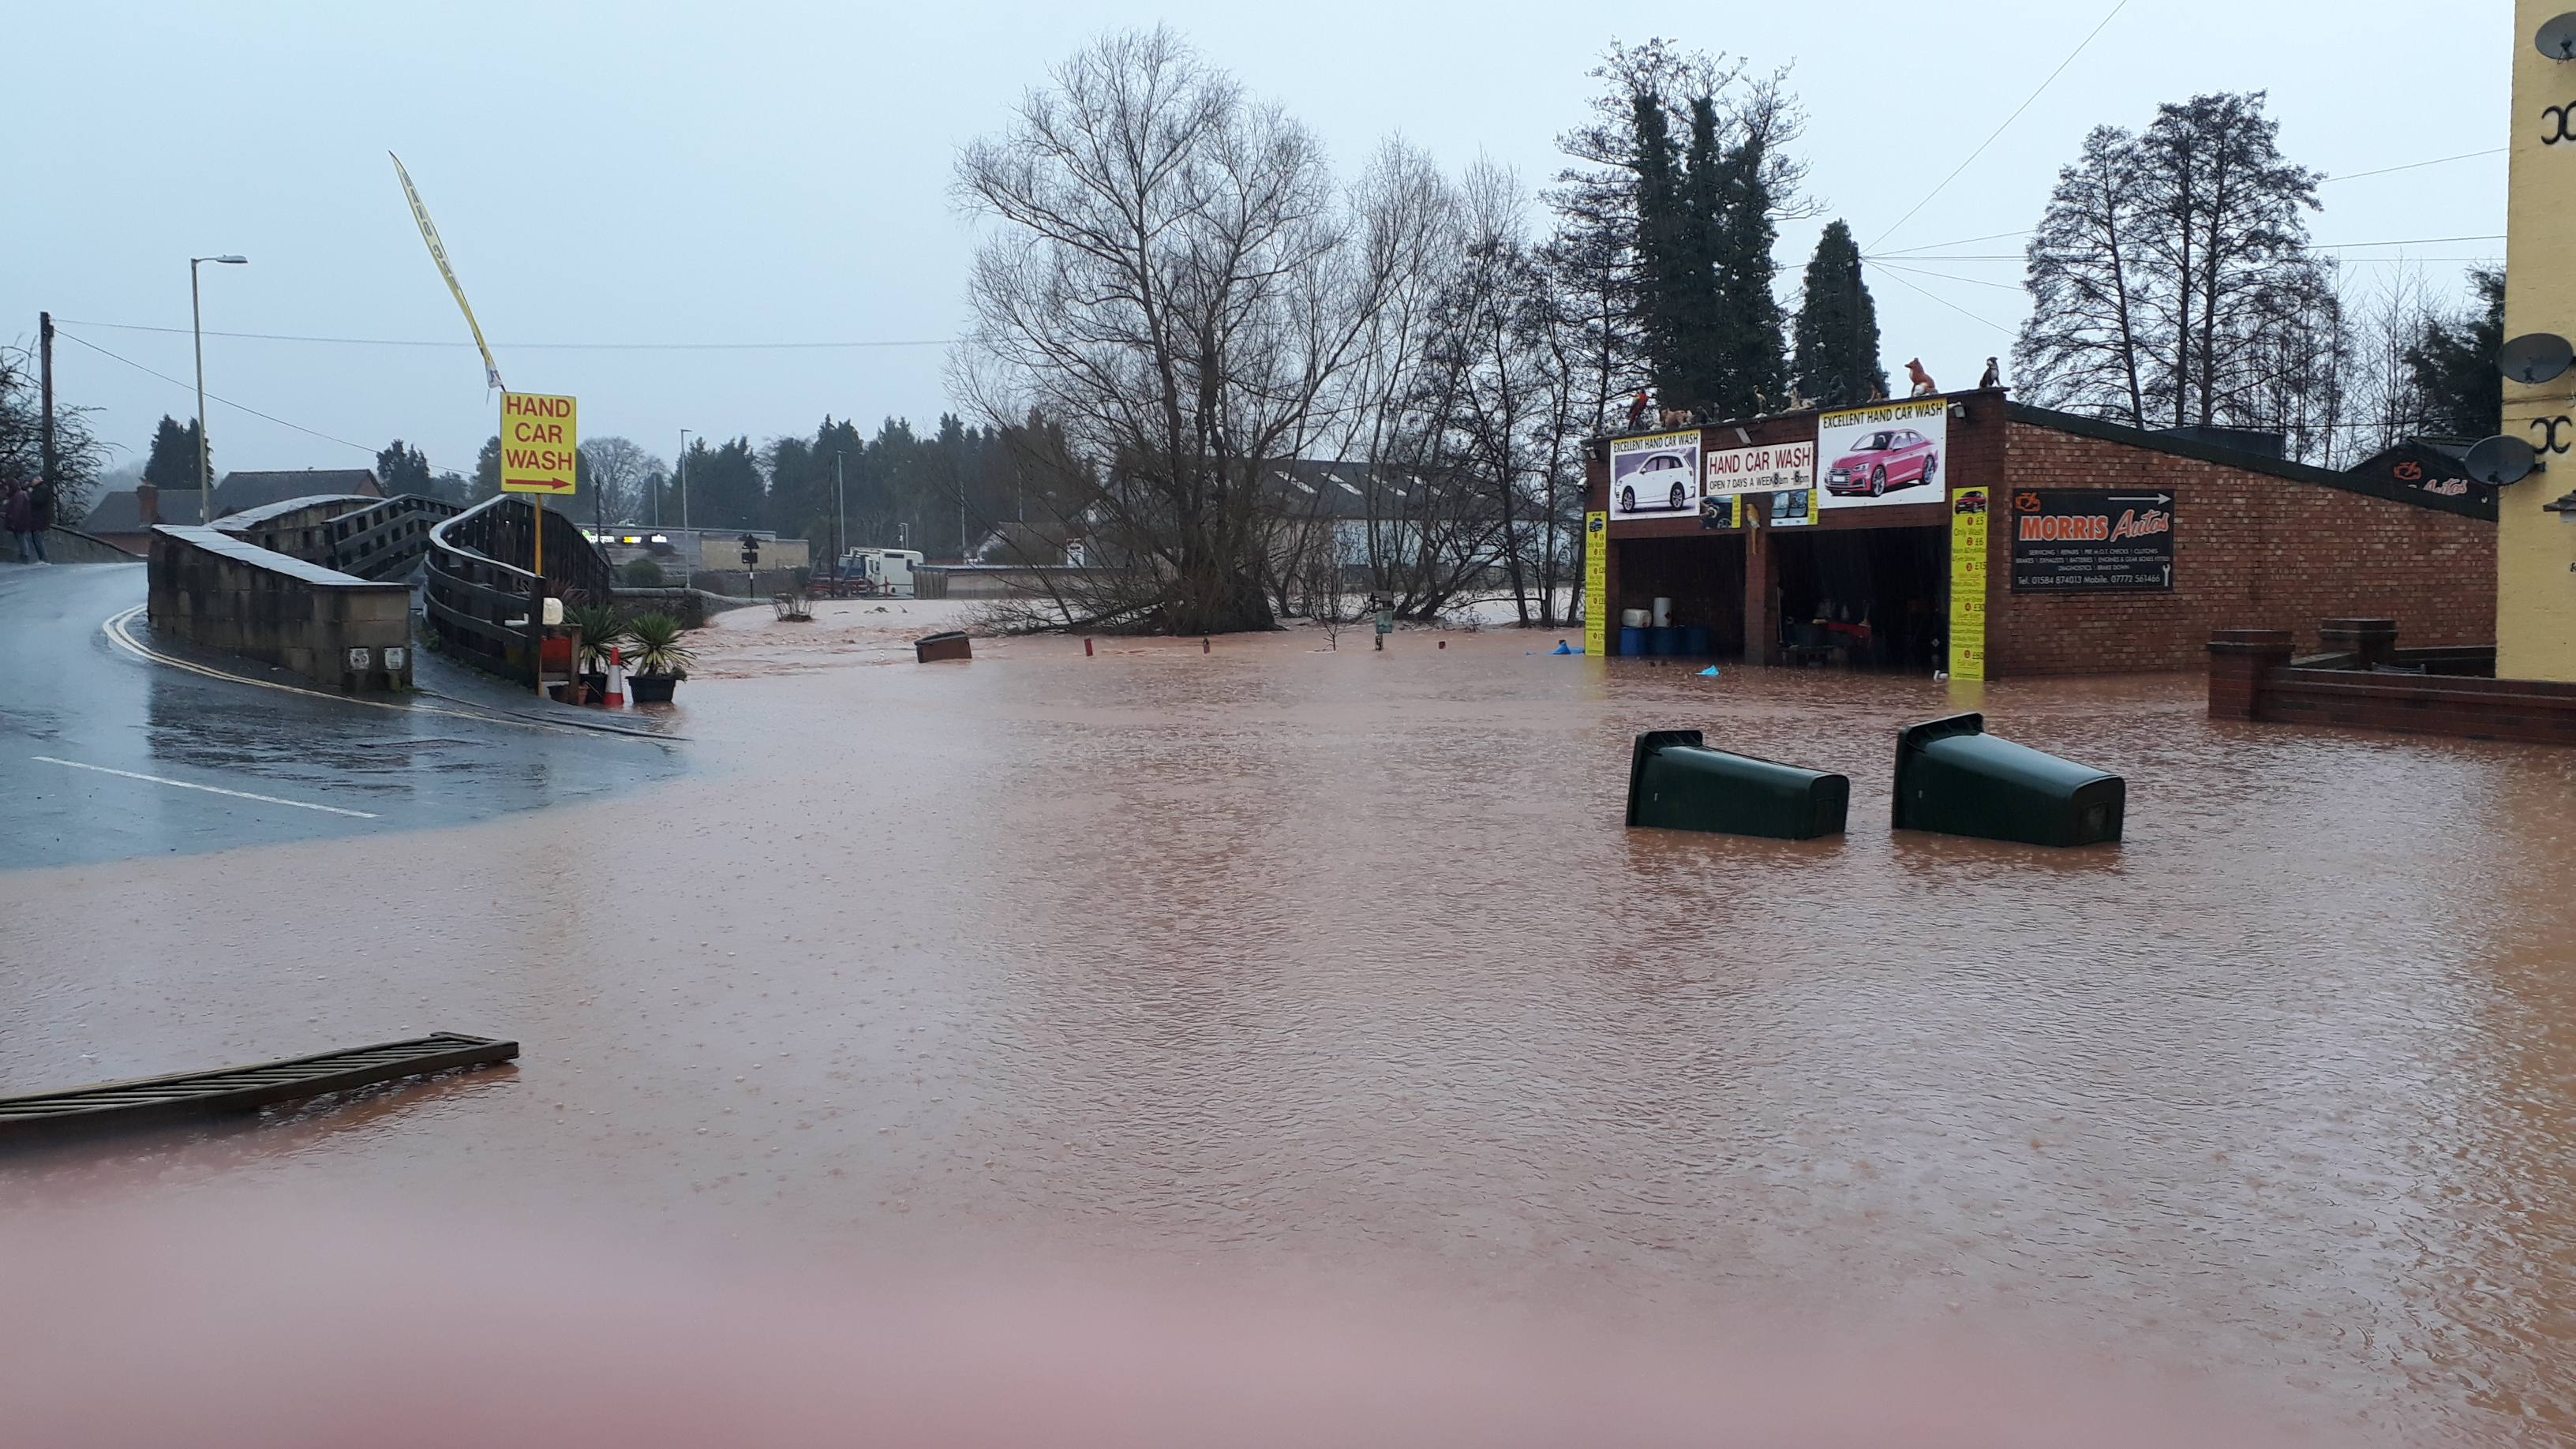 New flood warning for Teme Saturday into Sunday – Shropshire Council is delivering sandbags